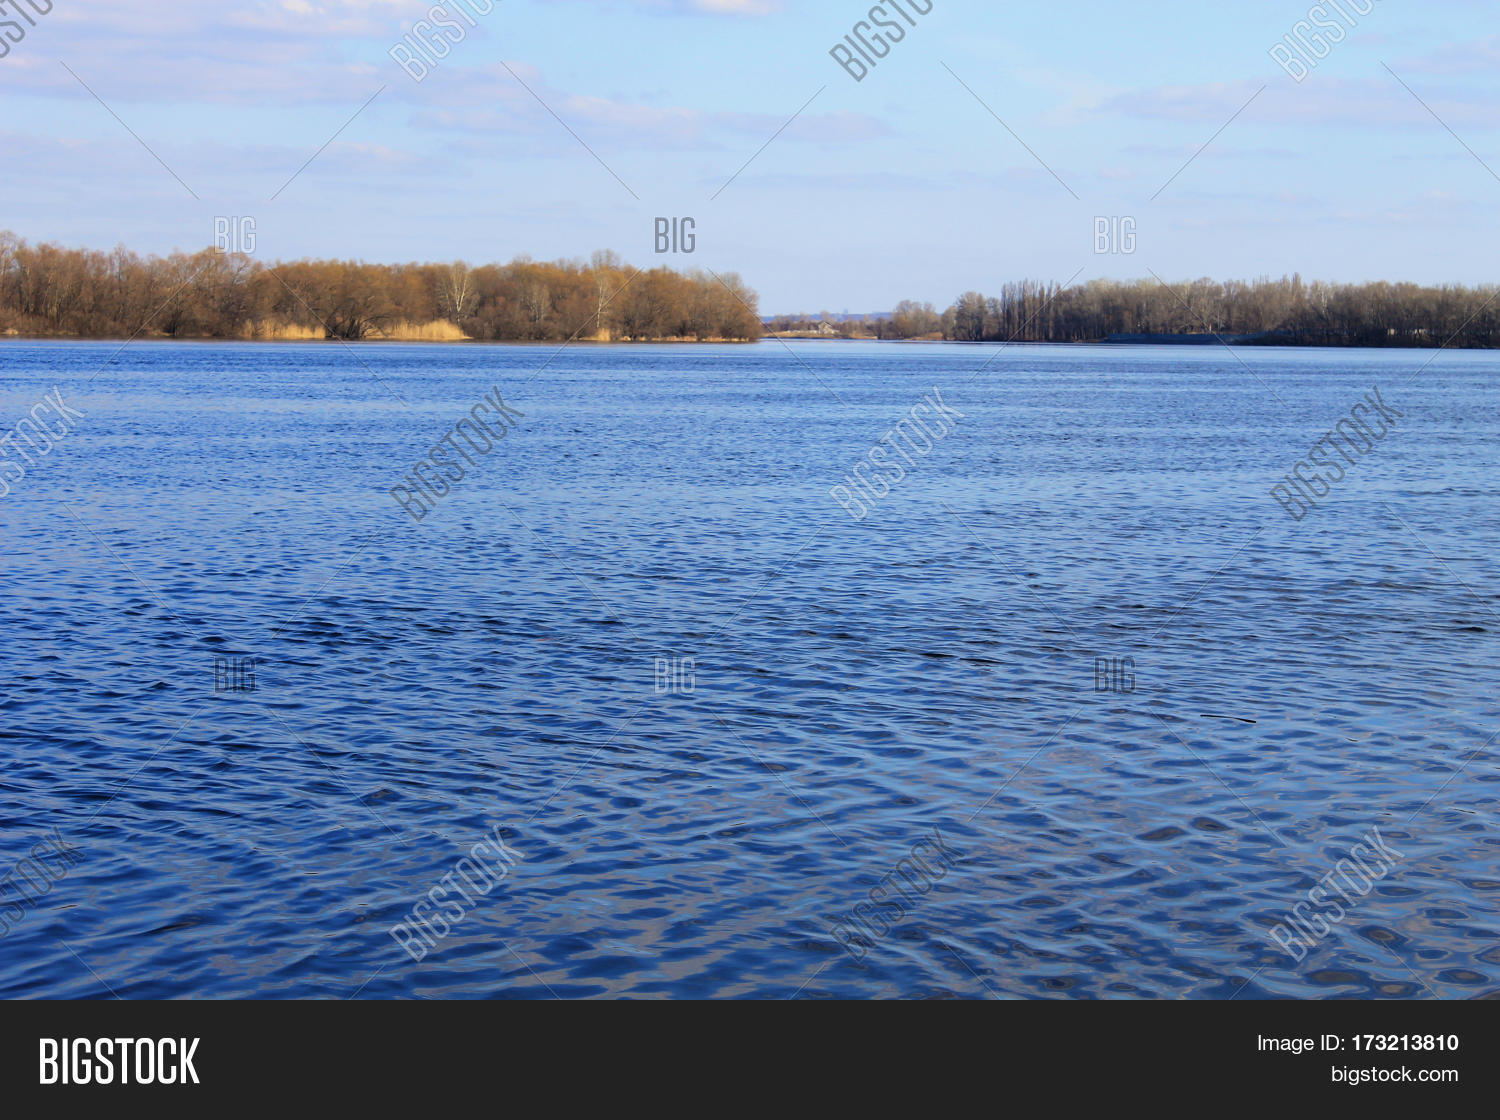 background,beautiful,blue,brook,calm,cargo,city,clouds,creek,delivery,dnieper,dock,environment,flowing,horizon,industrial,industry,jetty,kremenchug,landscape,loader,natural,nature,outdoor,peaceful,plant,portn,river,riverbank,scene,scenery,scenic,seasonal,serene,shipyard,silence,sky,source,steel,stream,terrain,tourism,tranquil,transportation,ukraine,valley,view,water,wave,wharf